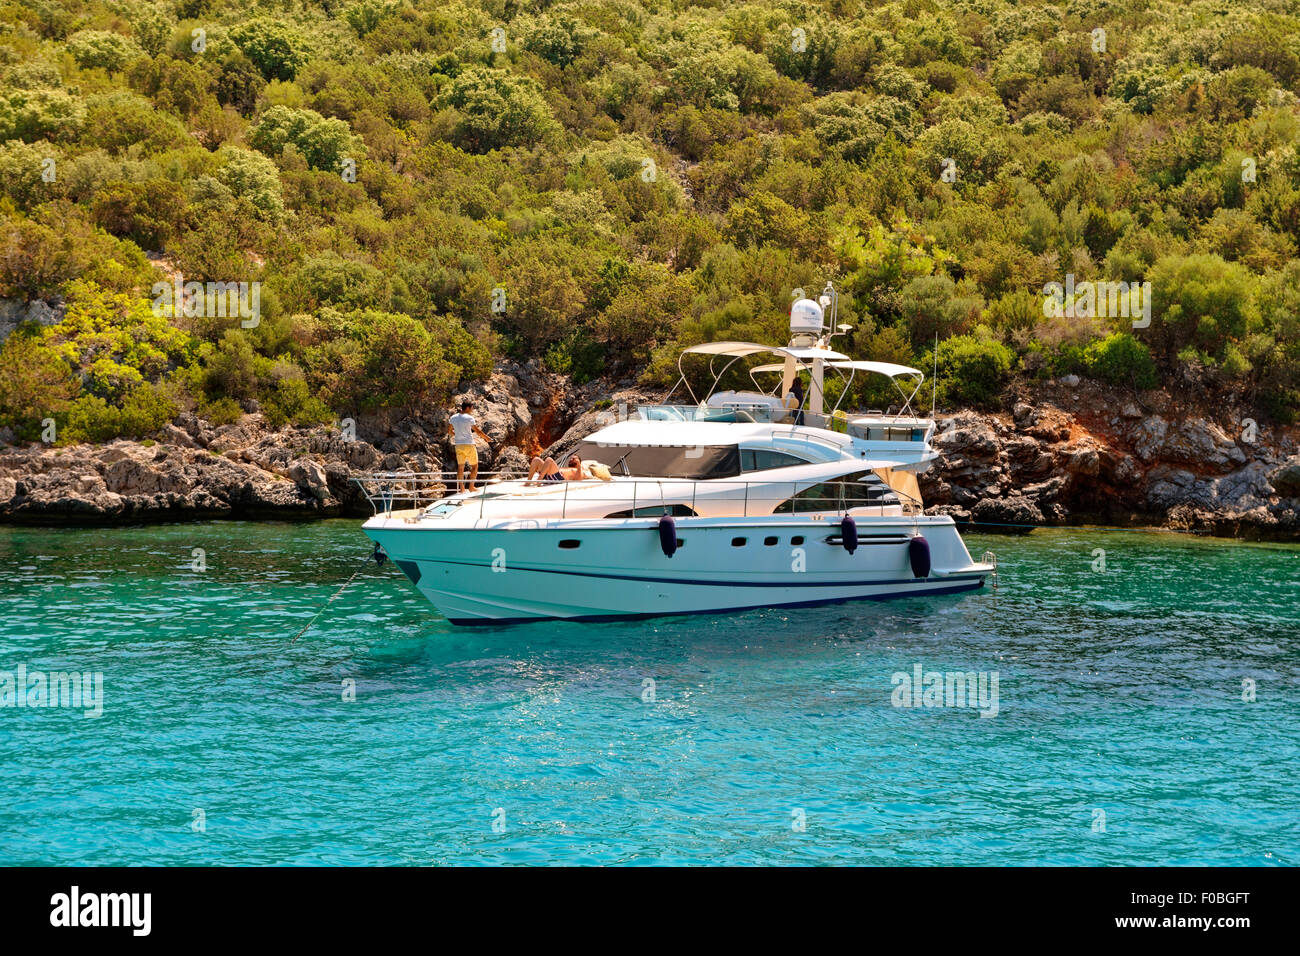 Small motor cruiser anchored in the Mediterranean. - Stock Image